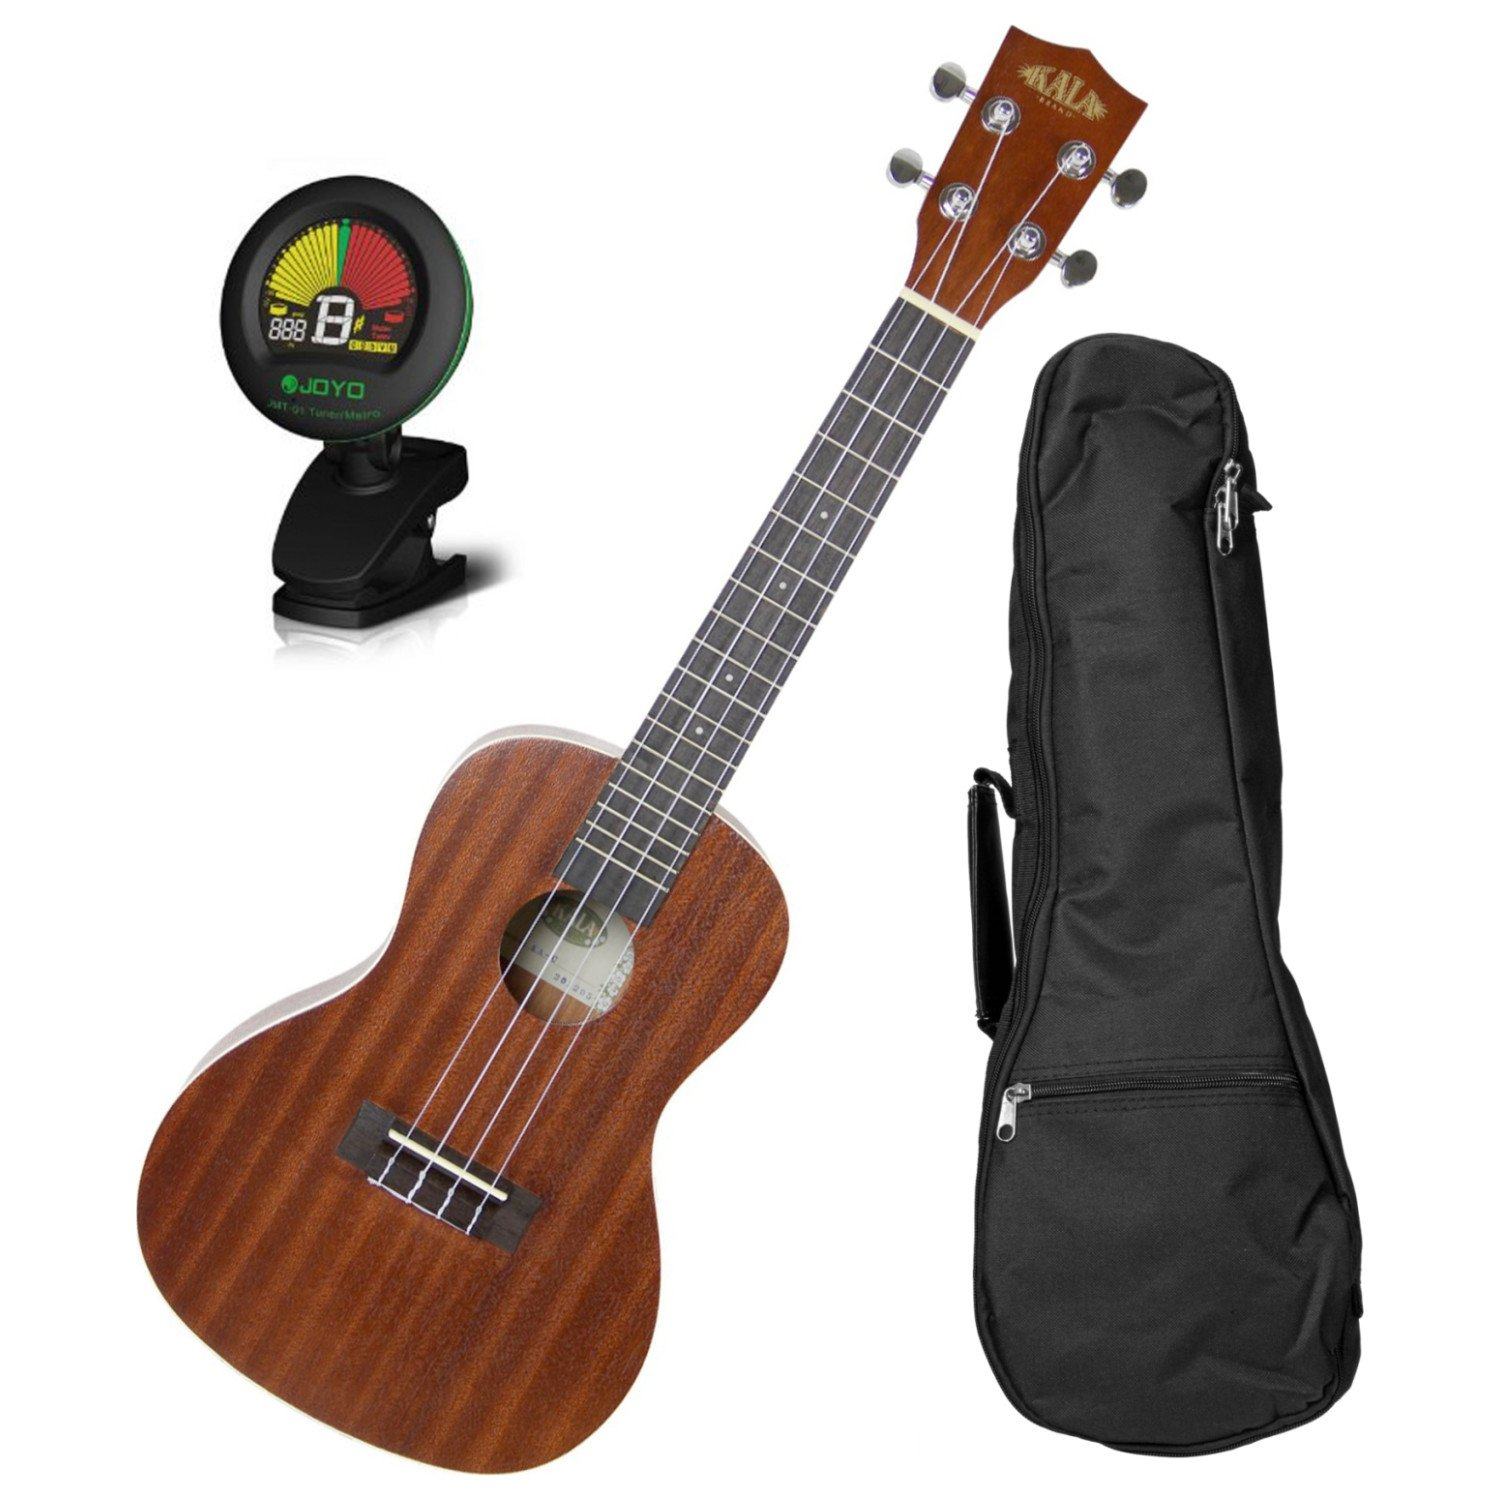 Kala KA-C Concert Satin Mahogany Ukulele w/10mm Padded Gig Bag and Tuner